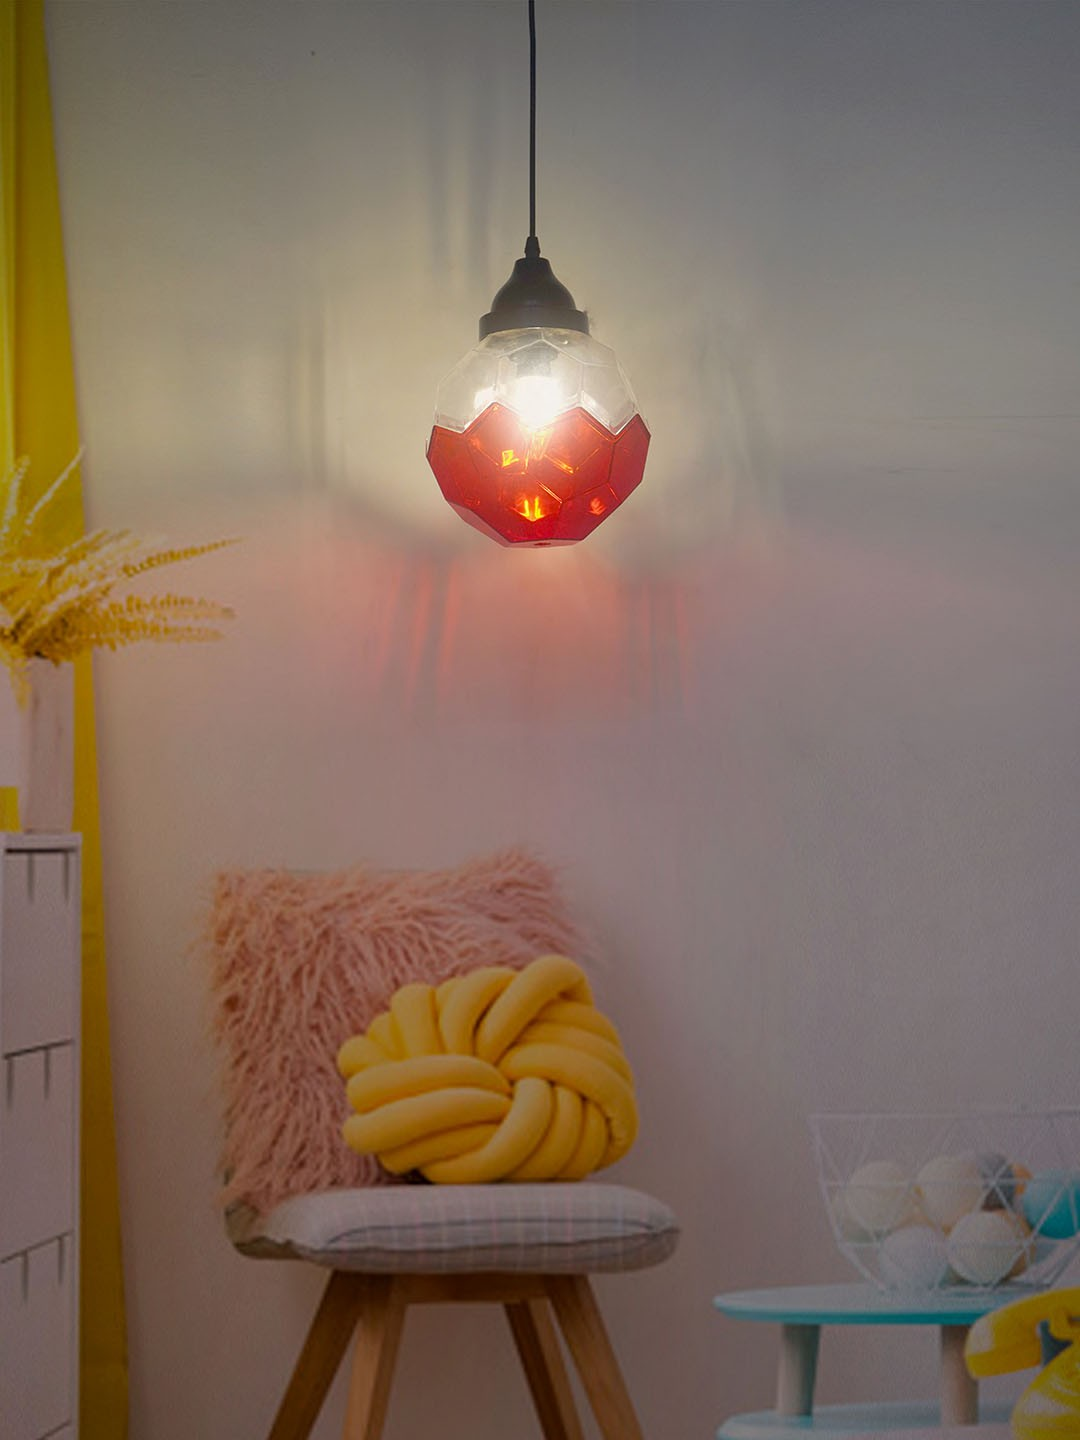 Football Shaped Acrylic Hanging Light in Red and Clear Color